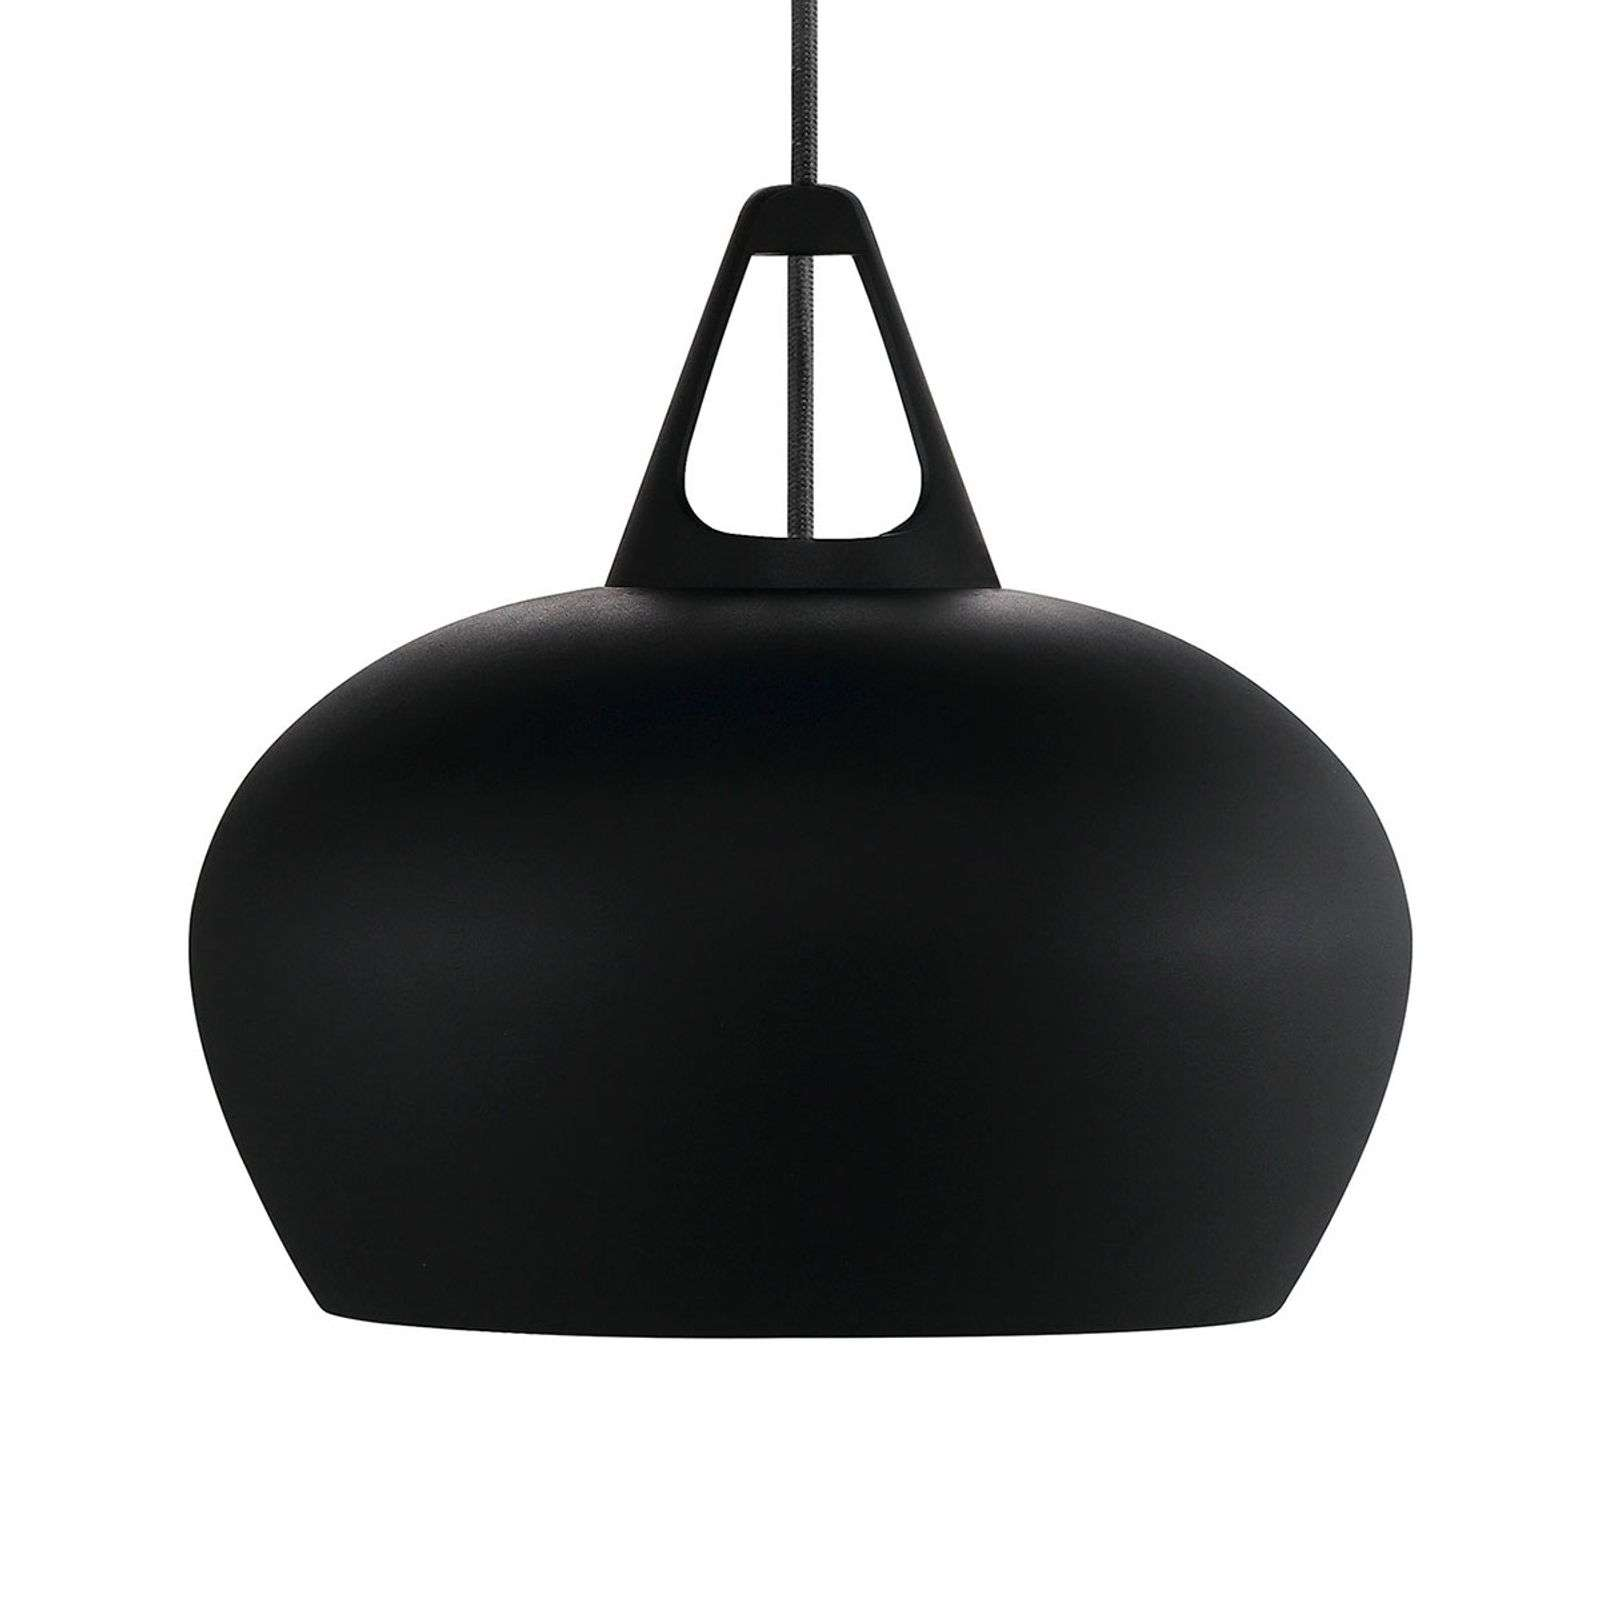 Suspension Belly, diamètre 38 cm